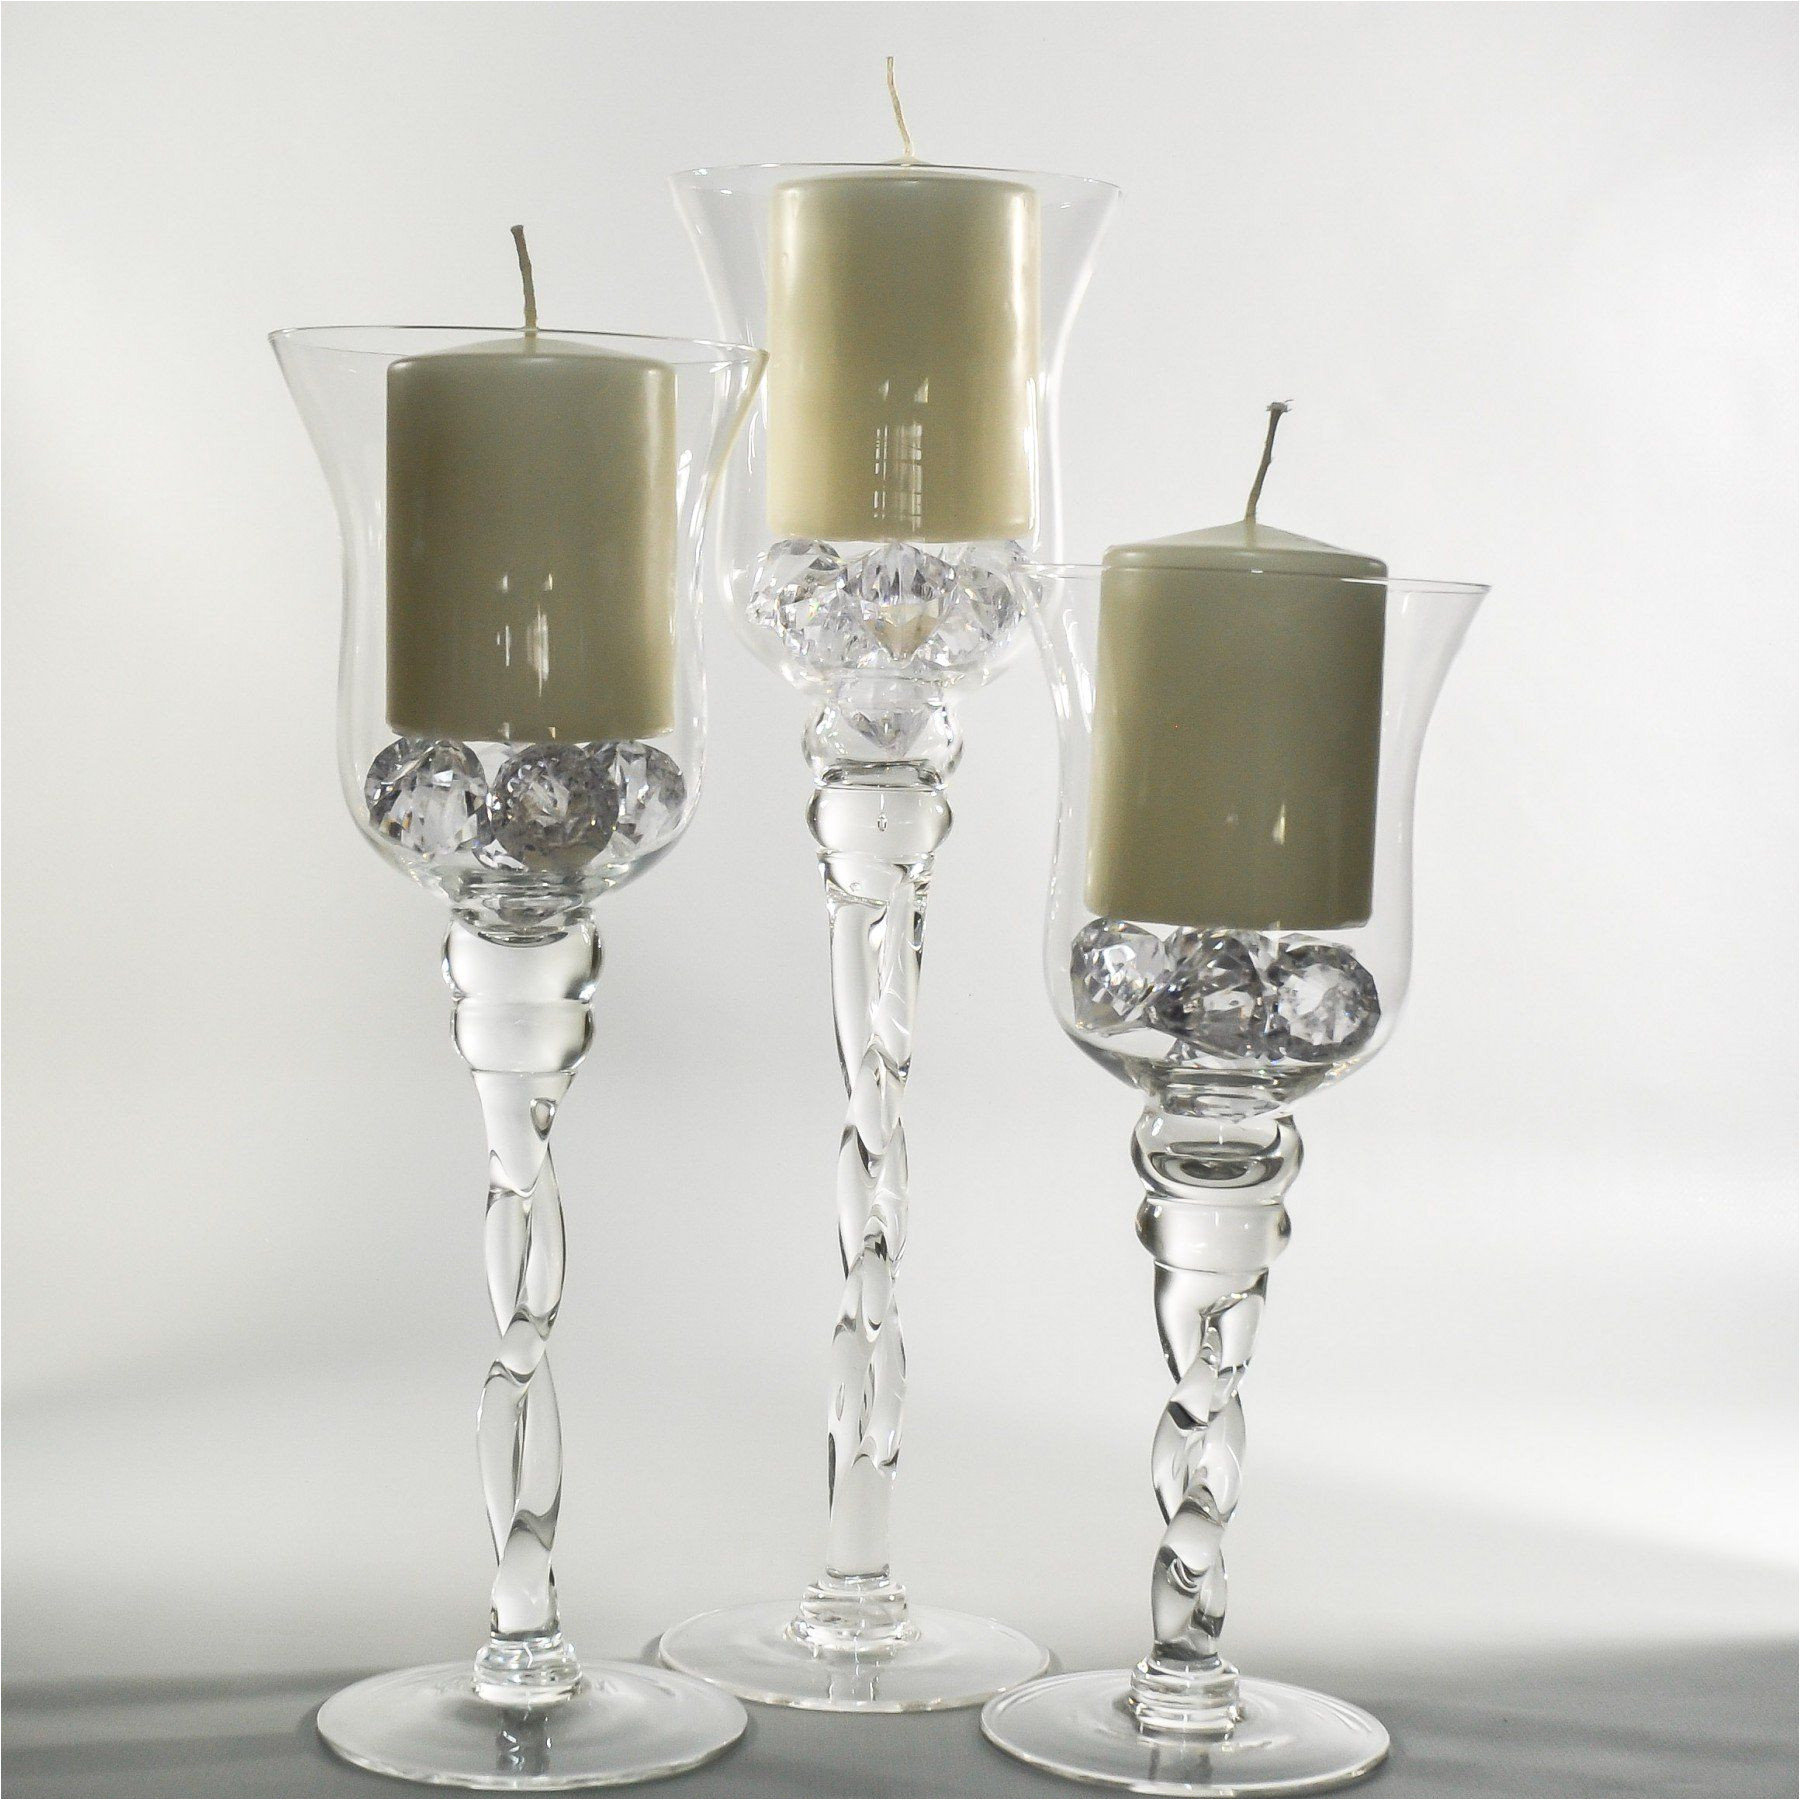 twisted clear glass vase candle holder 15 7 wholesale flowers and supplies